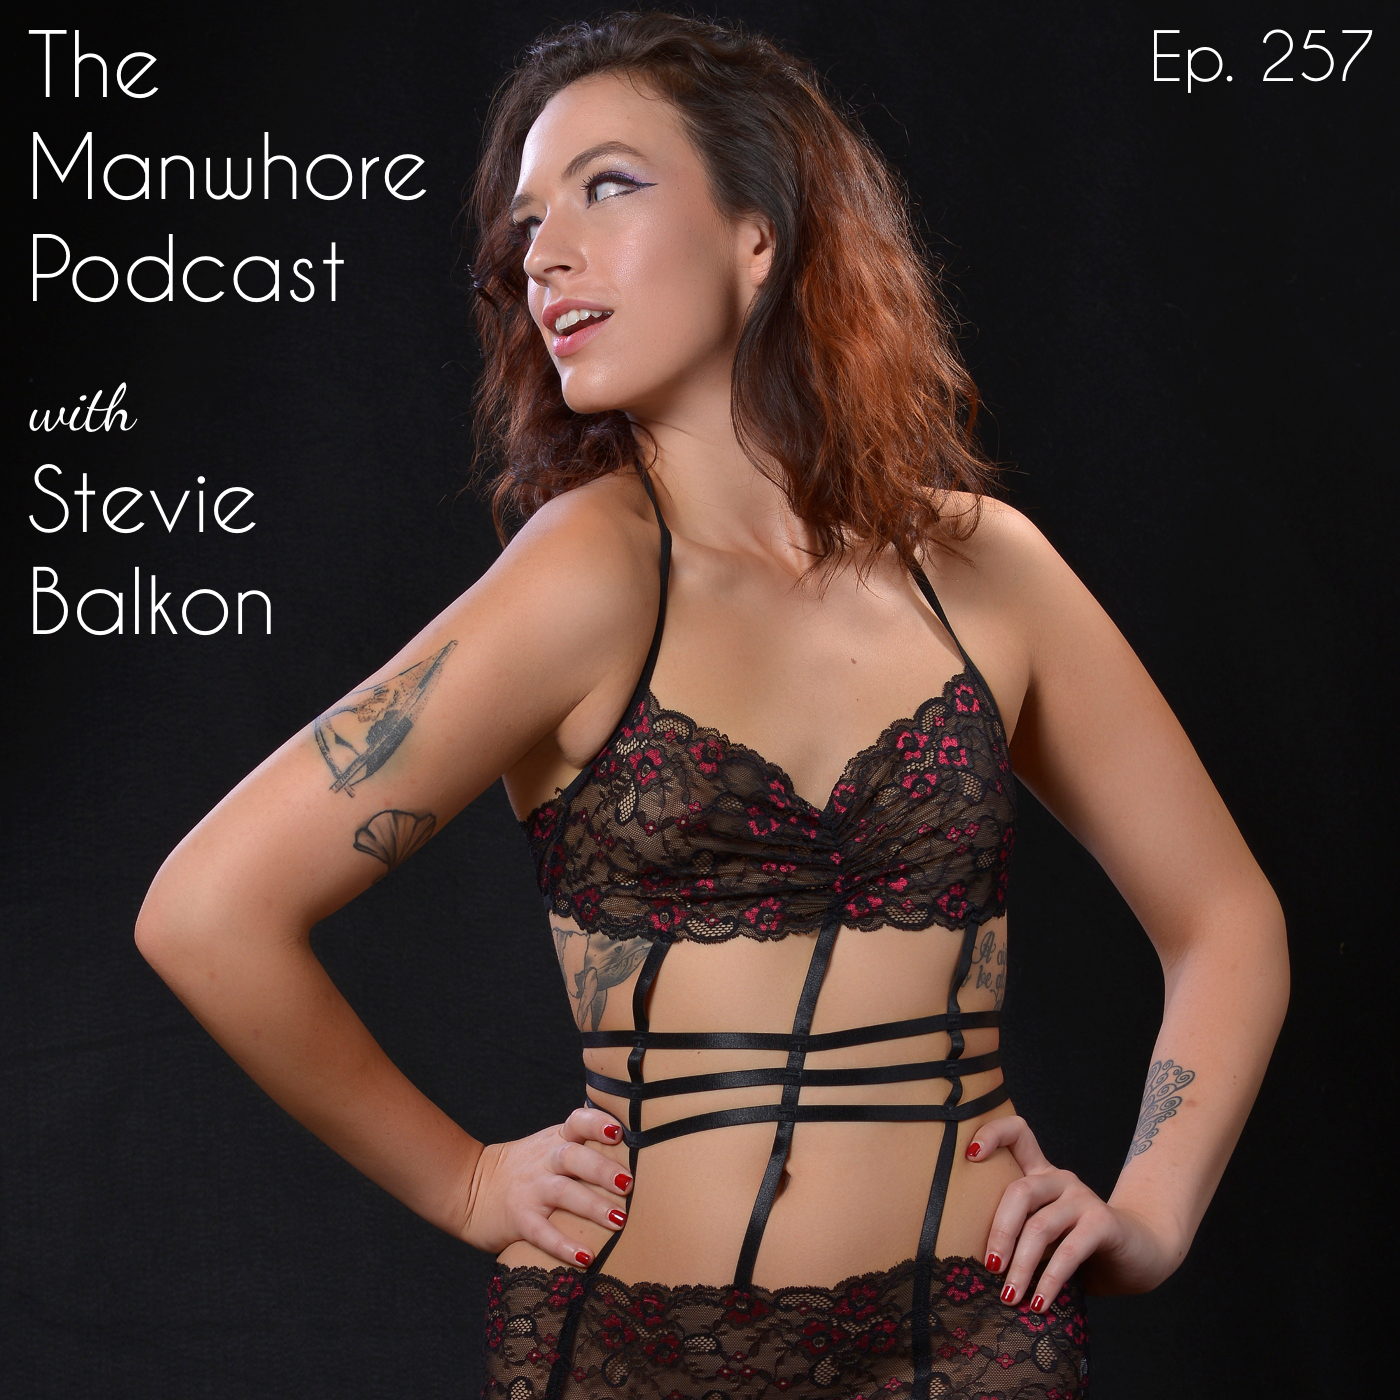 The Manwhore Podcast: A Sex-Positive Quest - Ep. 257: New York Sex Party Drama